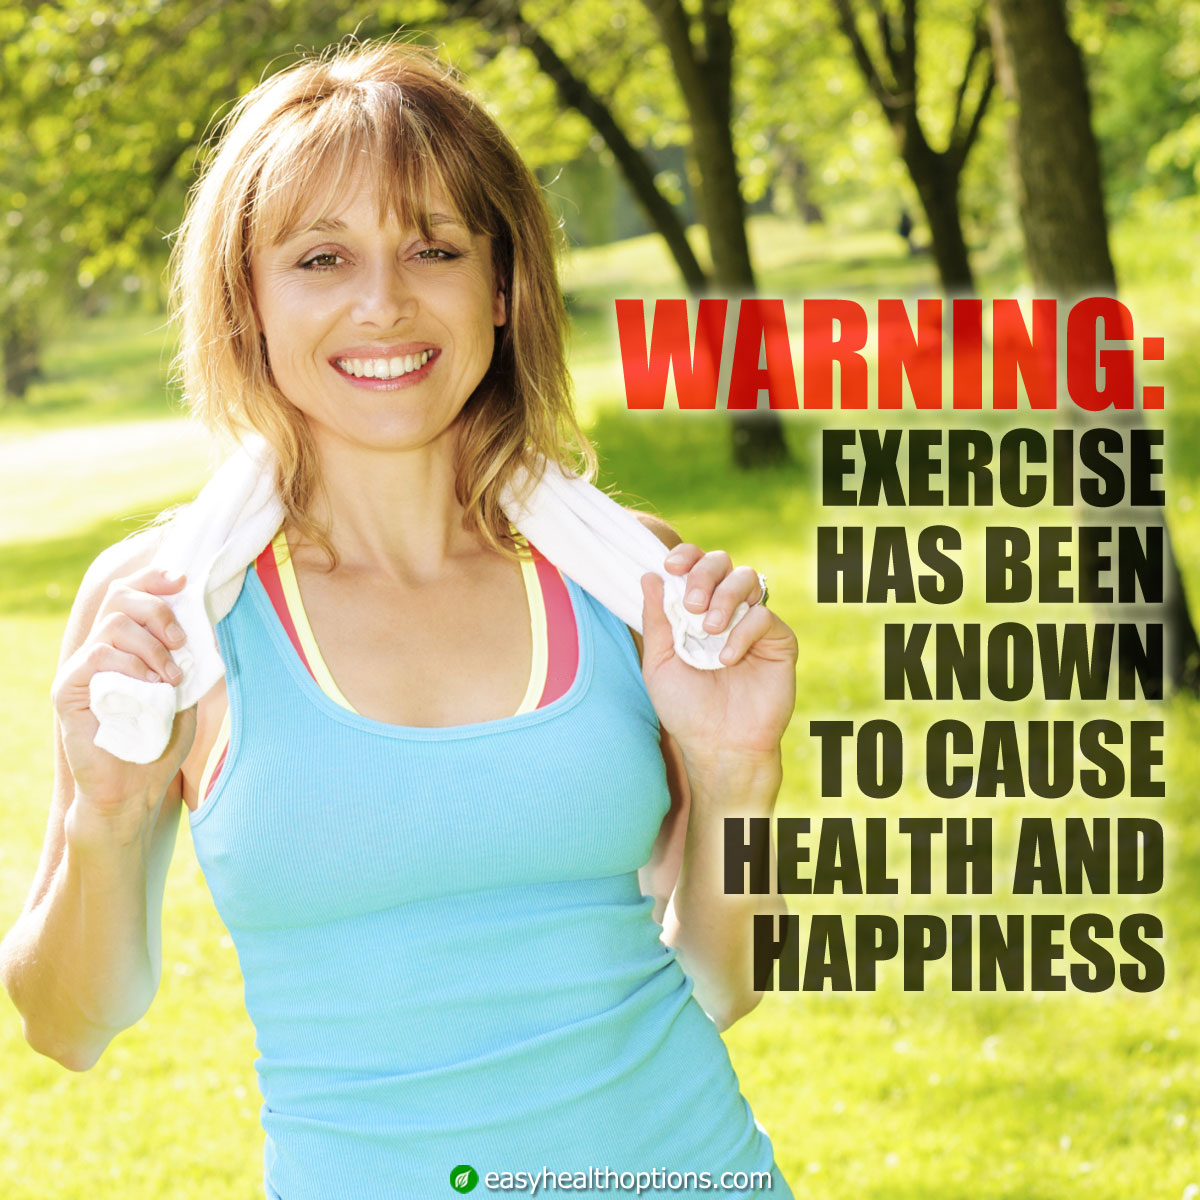 Warning: Exercise has been known to cause health and happiness!